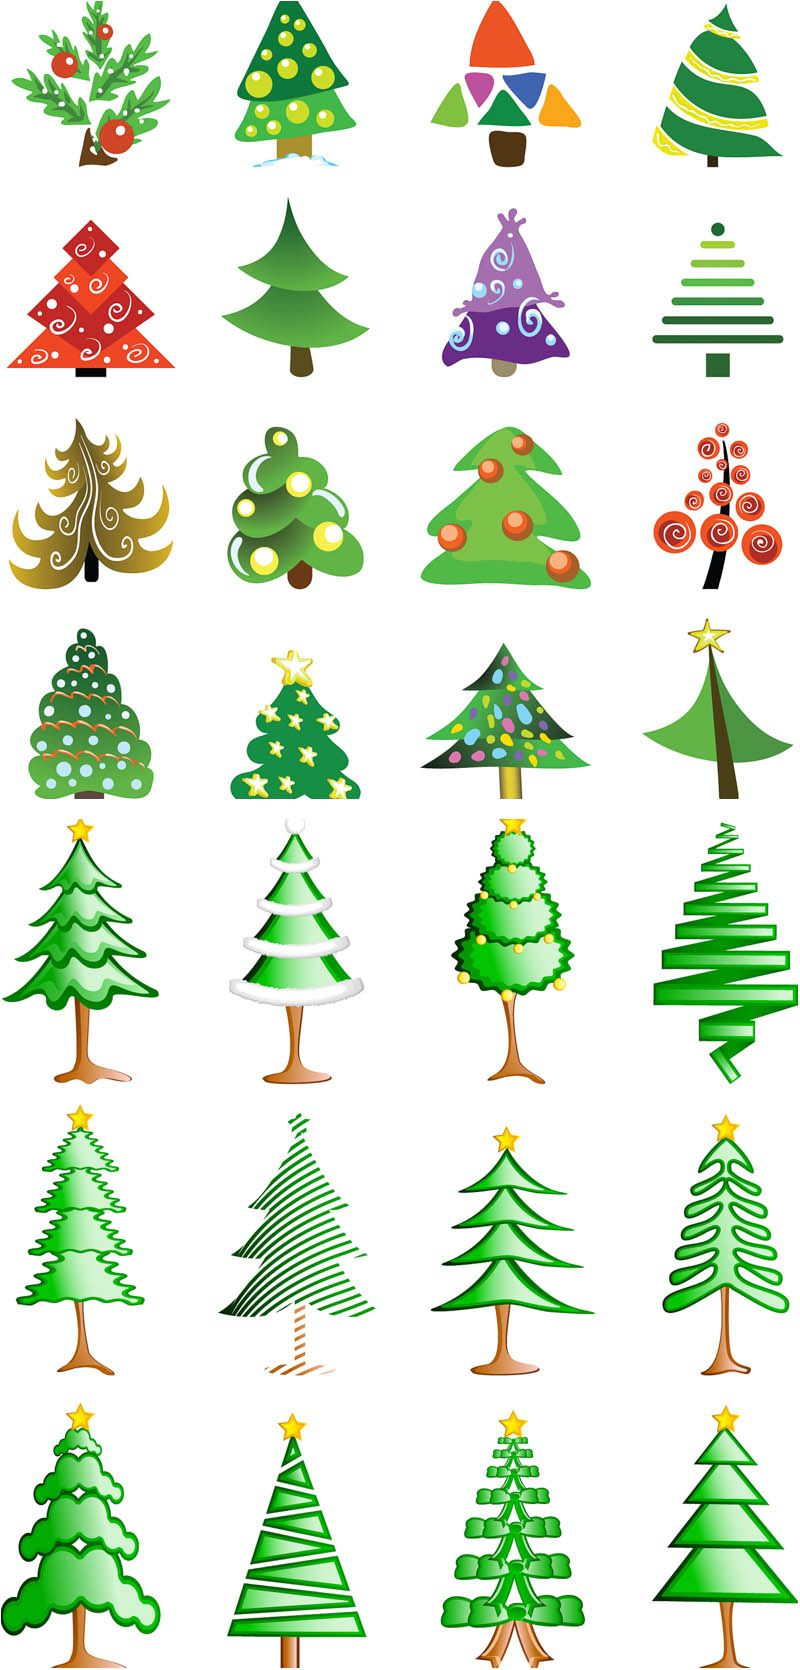 Abstract Christmas tree templates vector | Christmas tree template ...